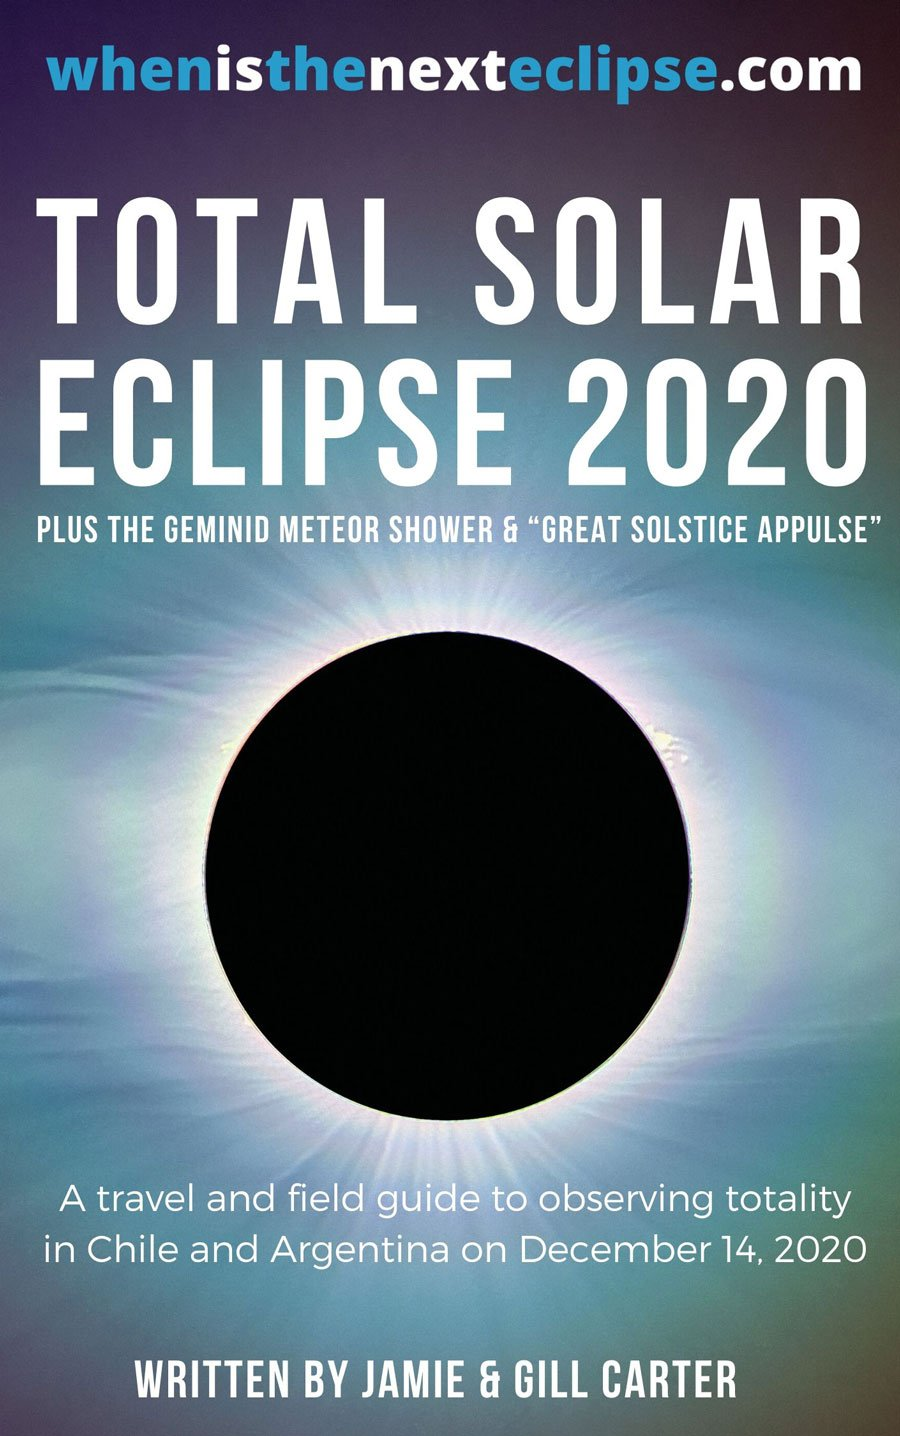 2020 total solar eclipse